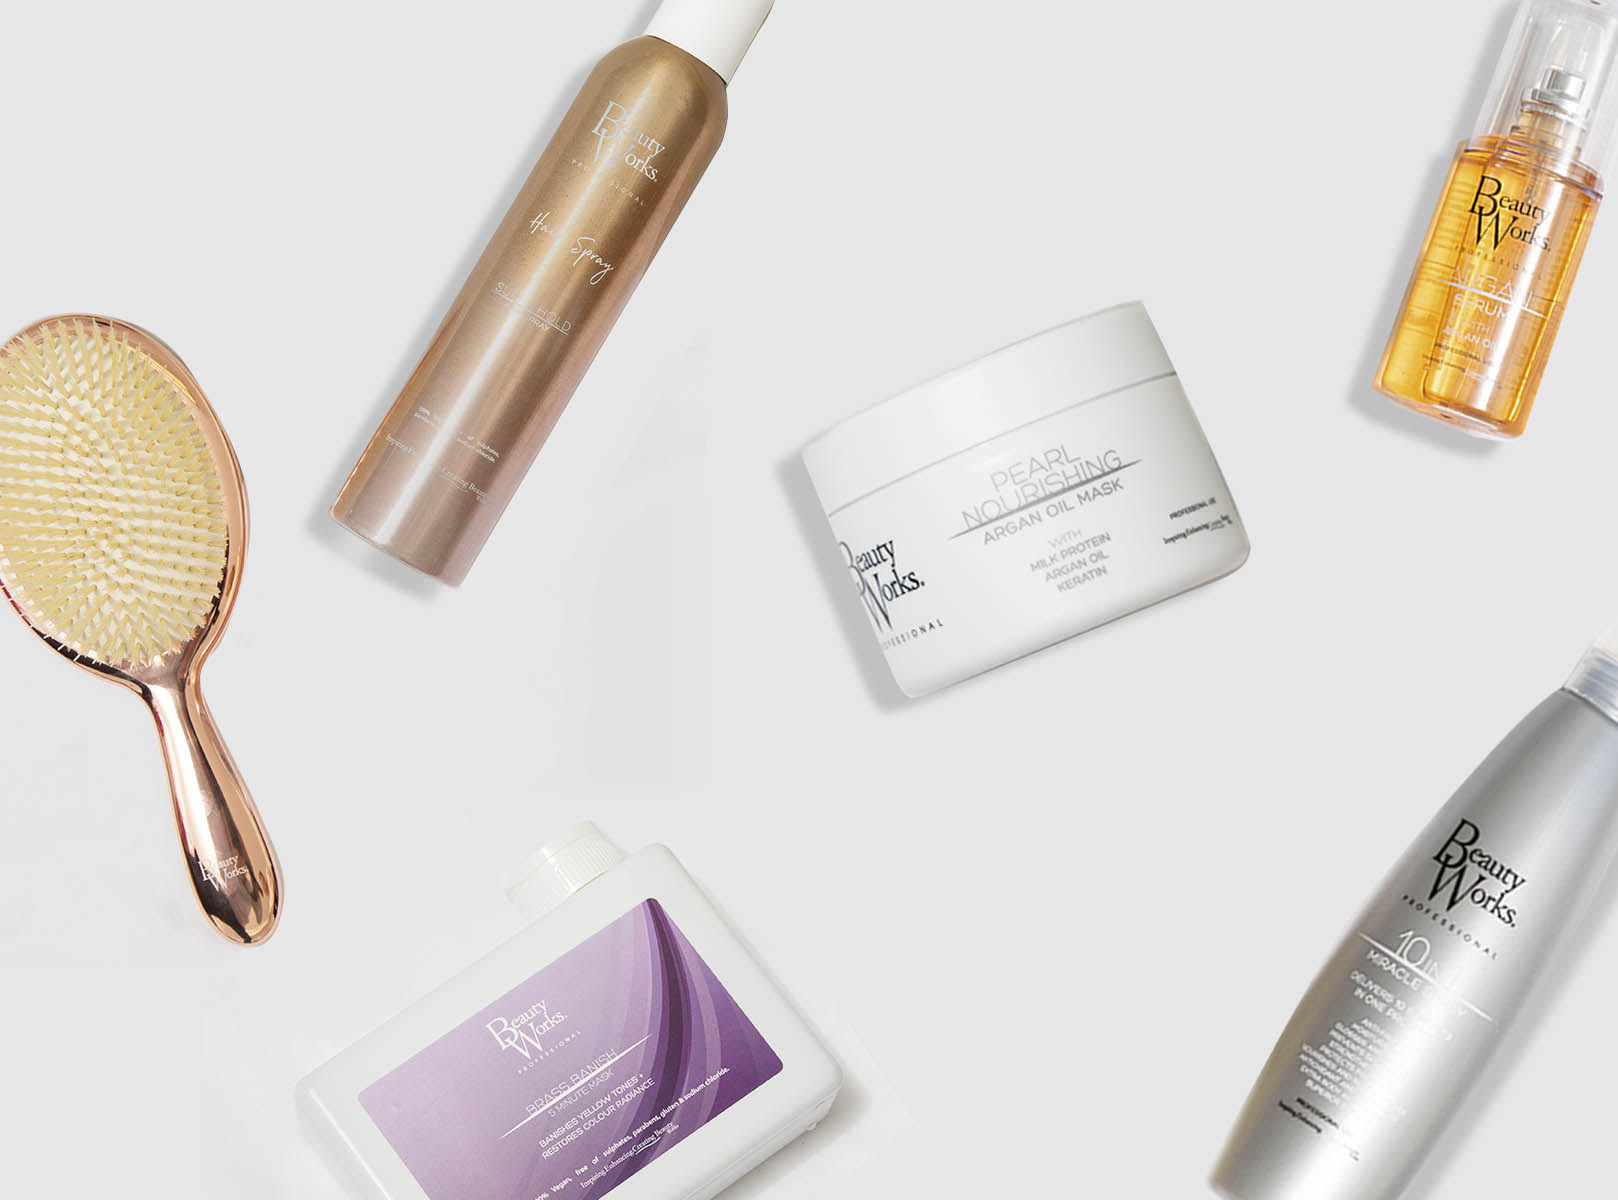 10% Off Haircare Products